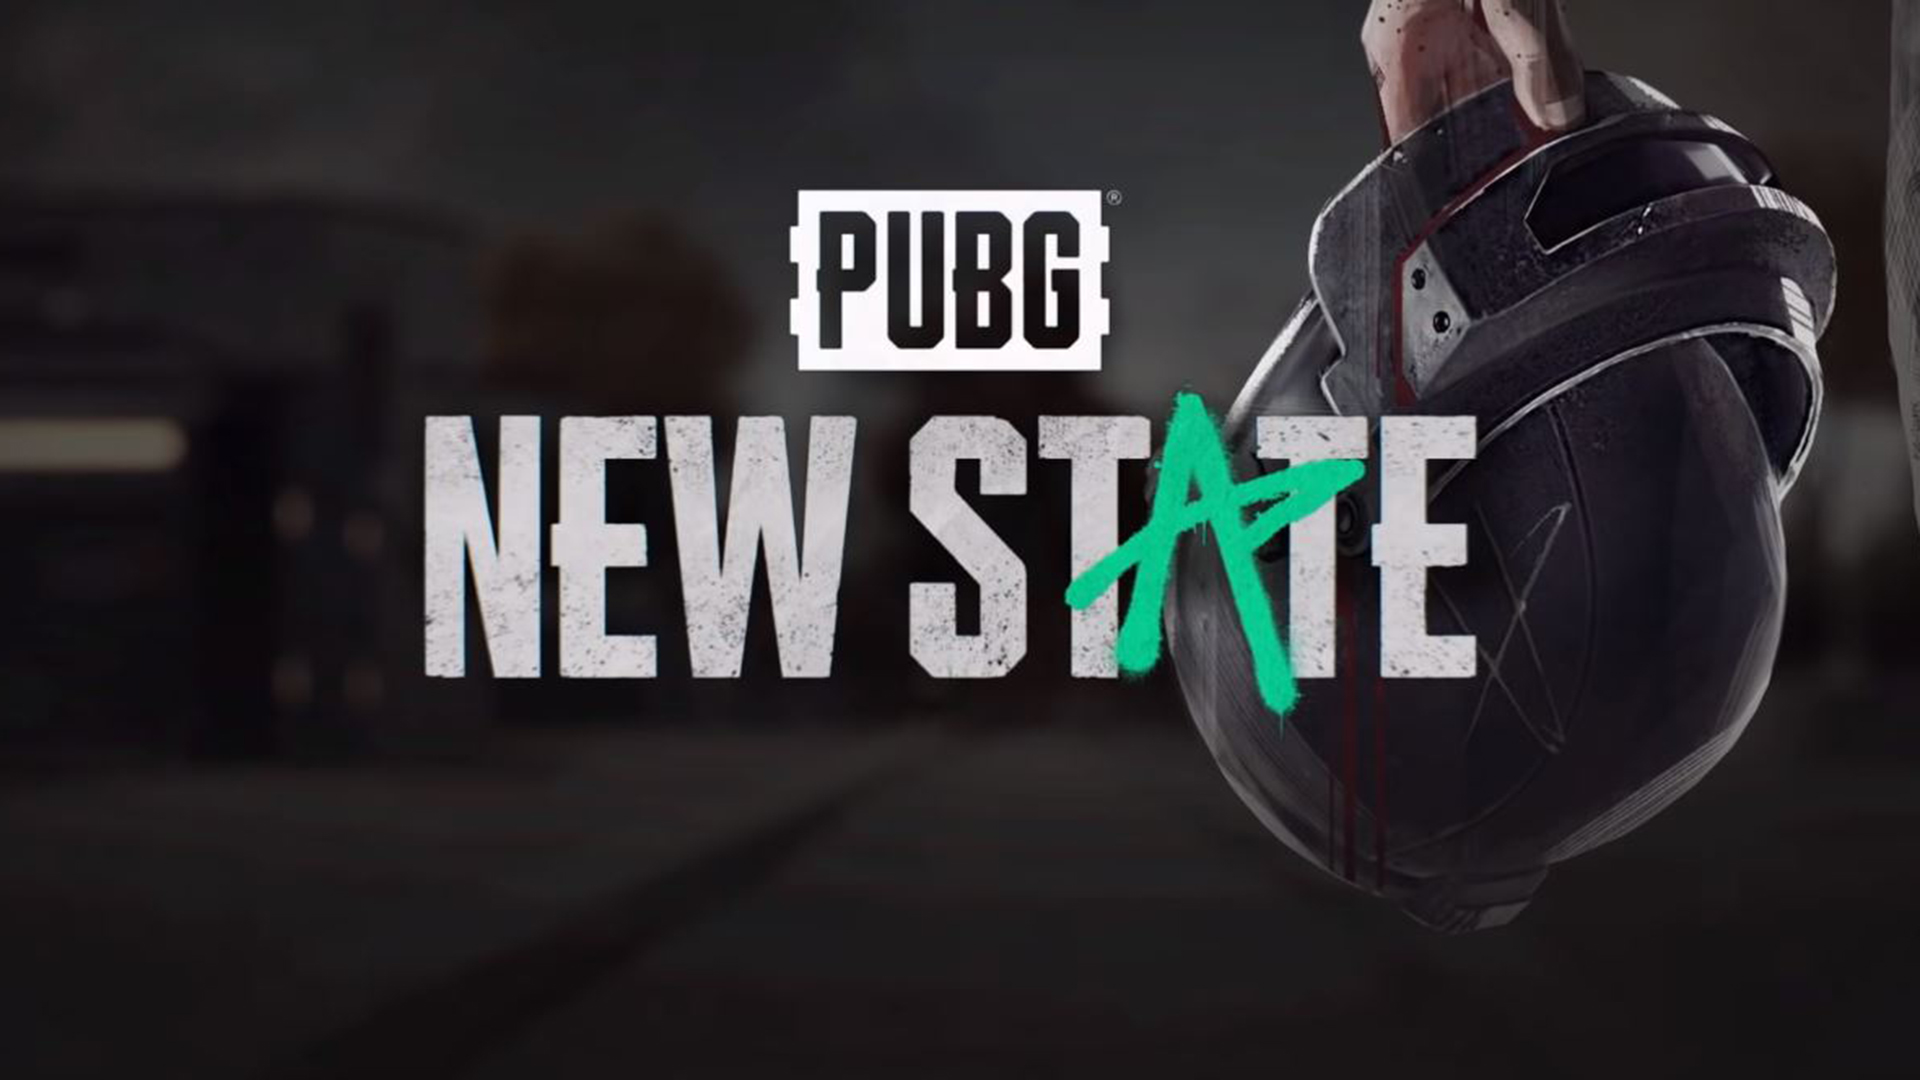 are-you-missing-the-pubg-new-state-in-india?-pubg-2-might-be-worth-waiting-for